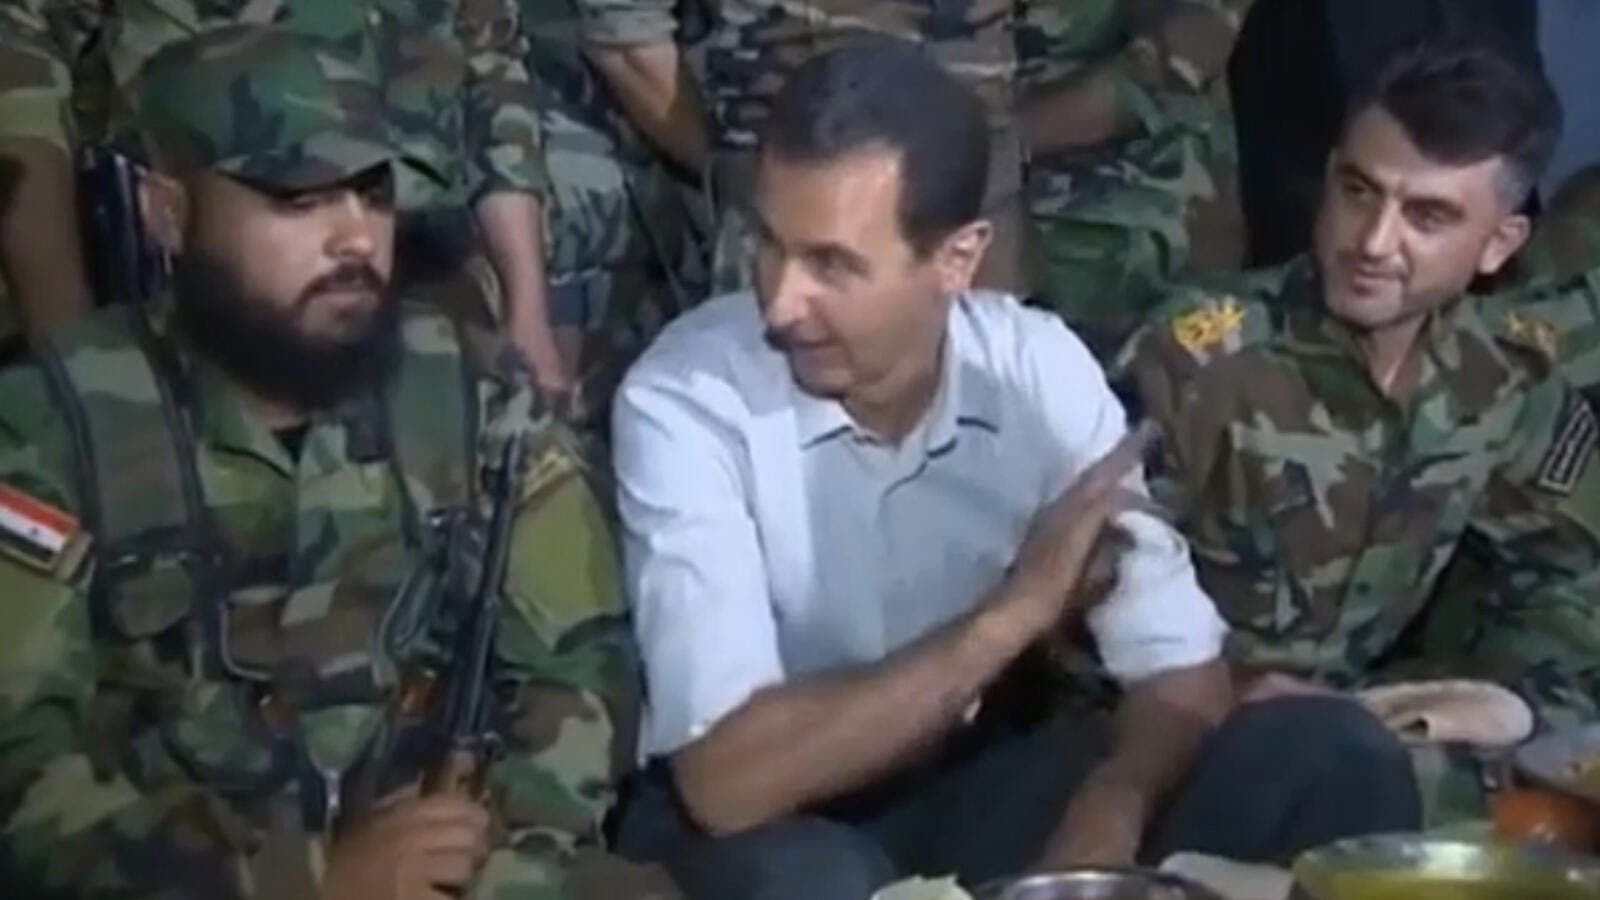 Footage showing Syrian President Bashar al-Assad visiting troops on the frontline near Damascus was broadcast on pro-government TV. (Euronews)